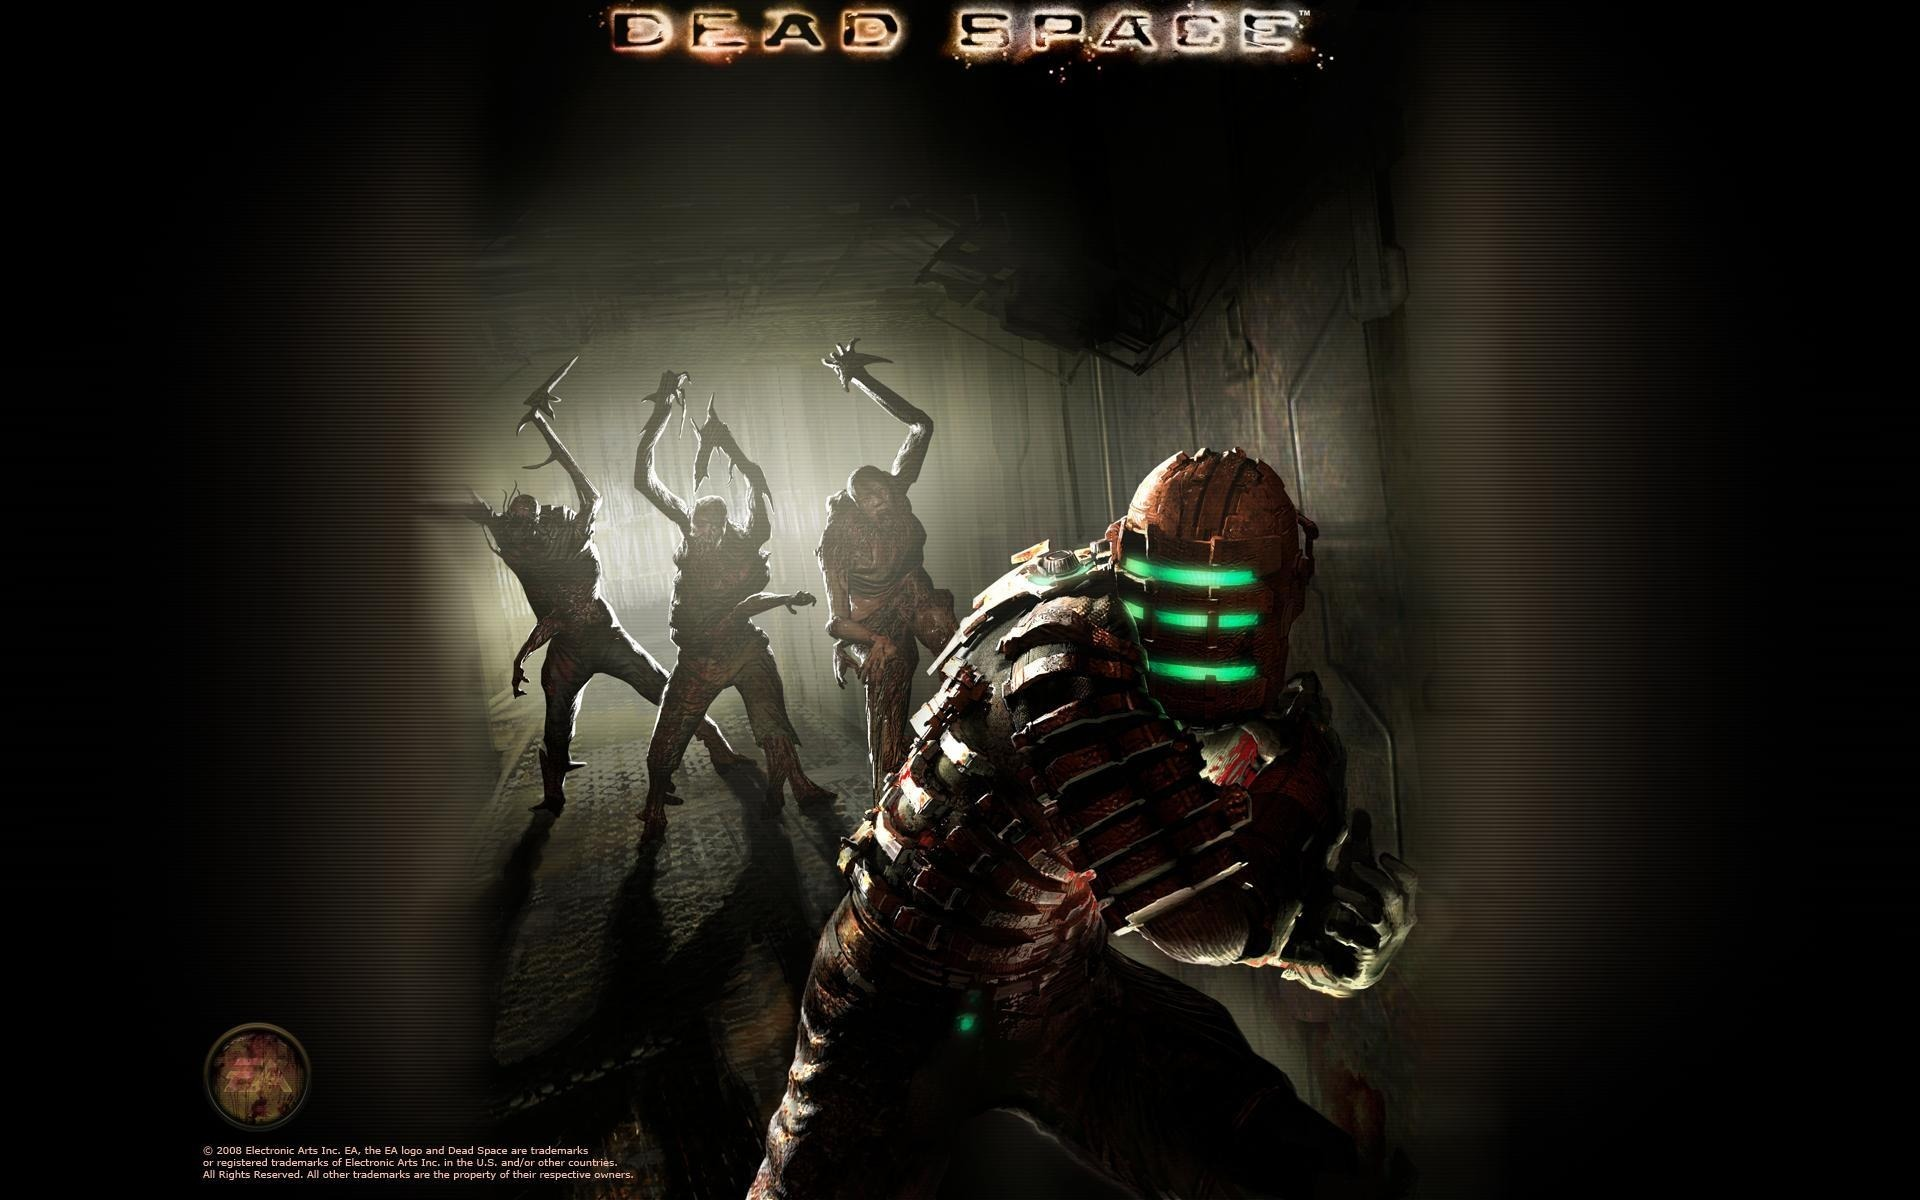 Deadspace nude mod sexy image